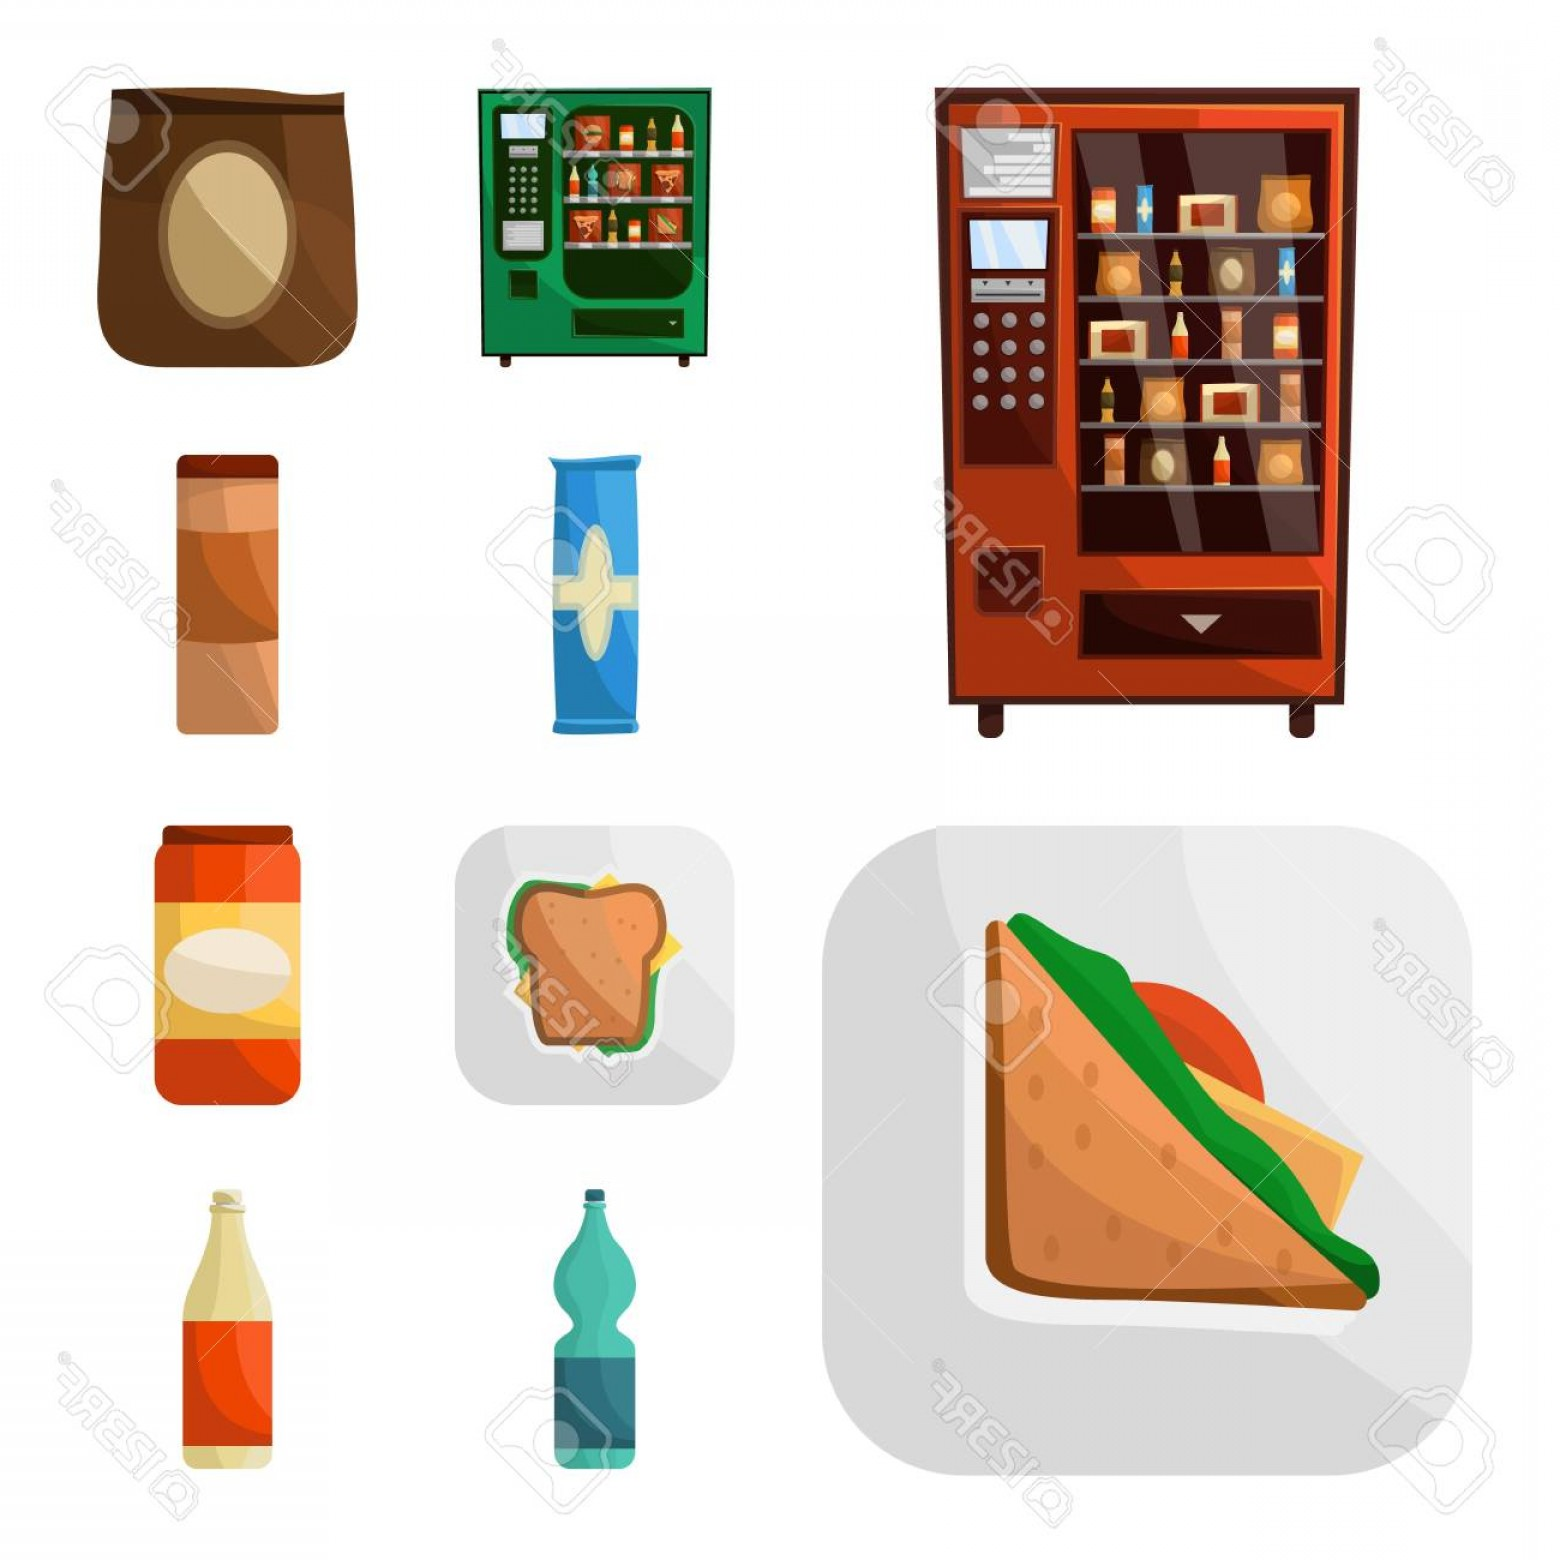 Snack Vector: Photostock Vector Vector Design Of Vending And Service Symbol Set Of Vending And Snack Vector Icon For Stock